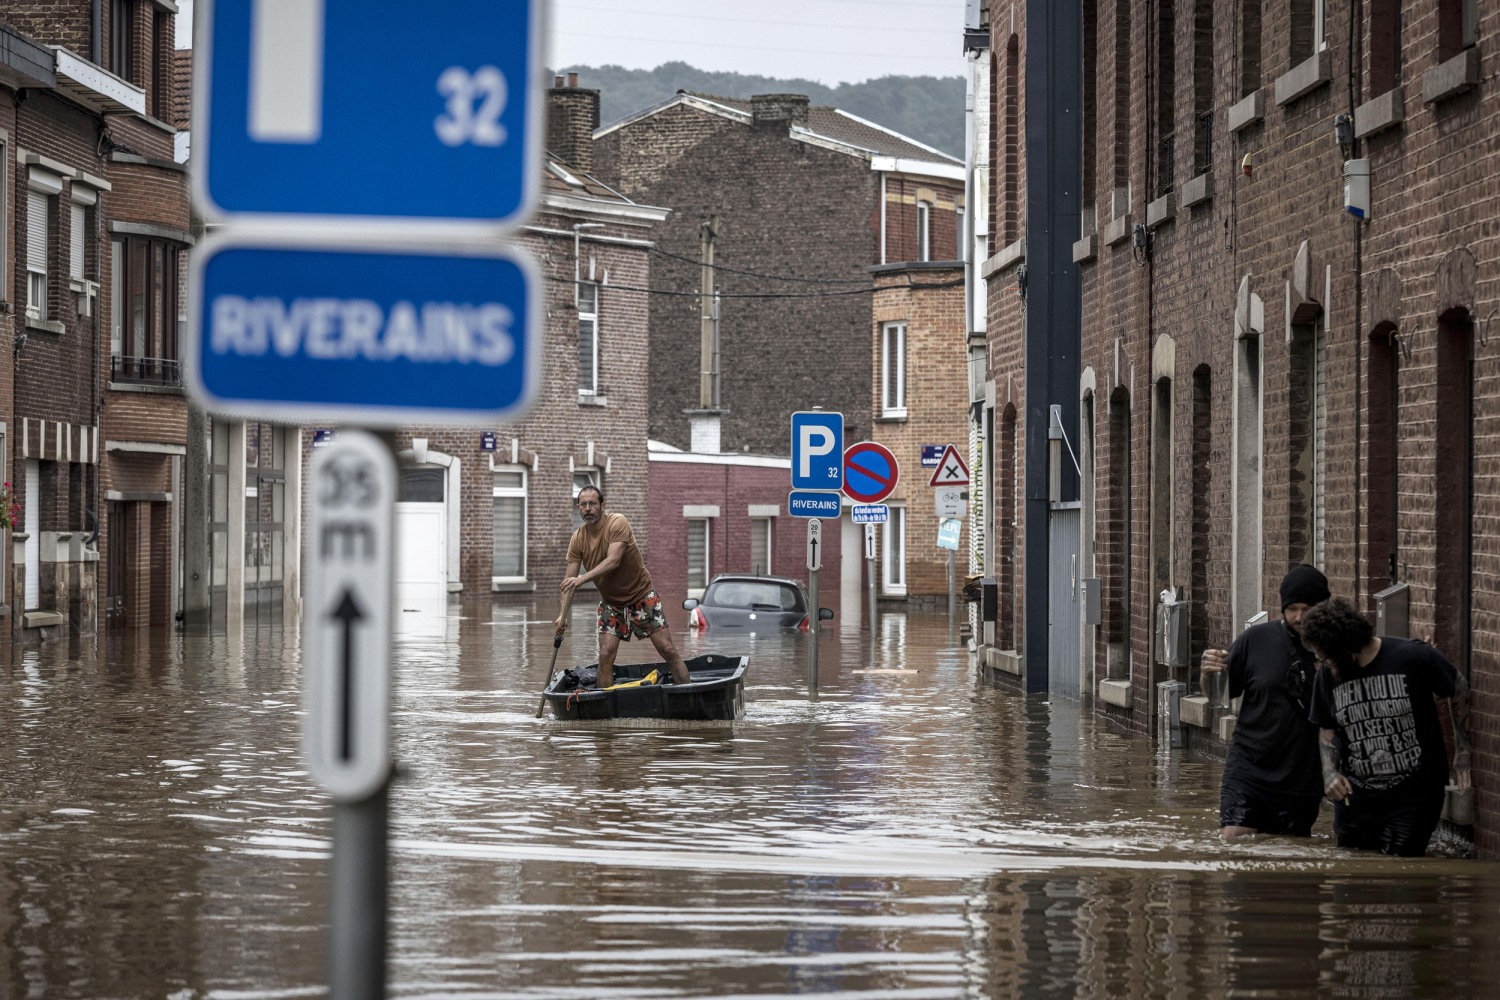 Over 150 Dead, More Than 1,000 People Missing After Raging Floods Hit Western Europe